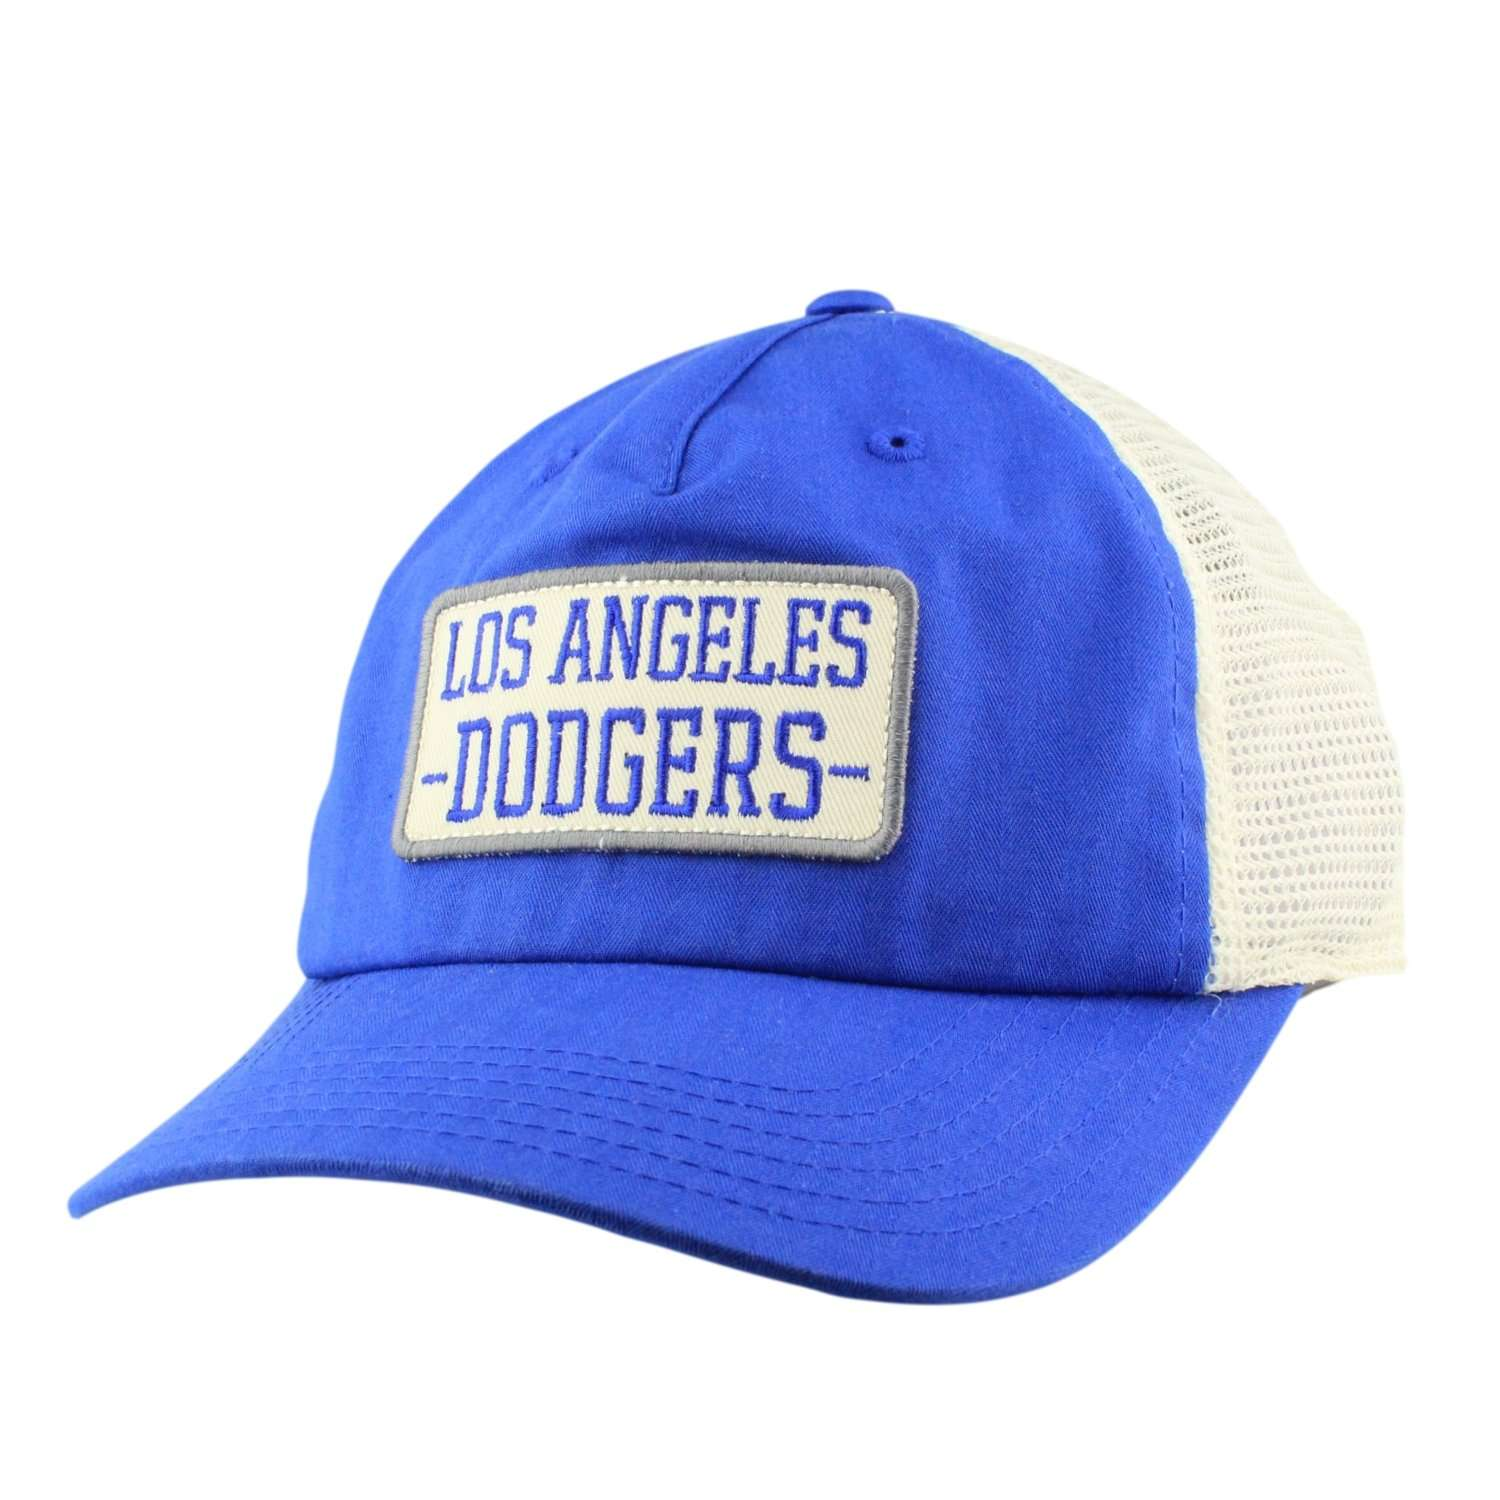 63b8175d03089 American Needle Los Angeles Dodgers Leon Blue White Blue Slouch Trucker  Snapback